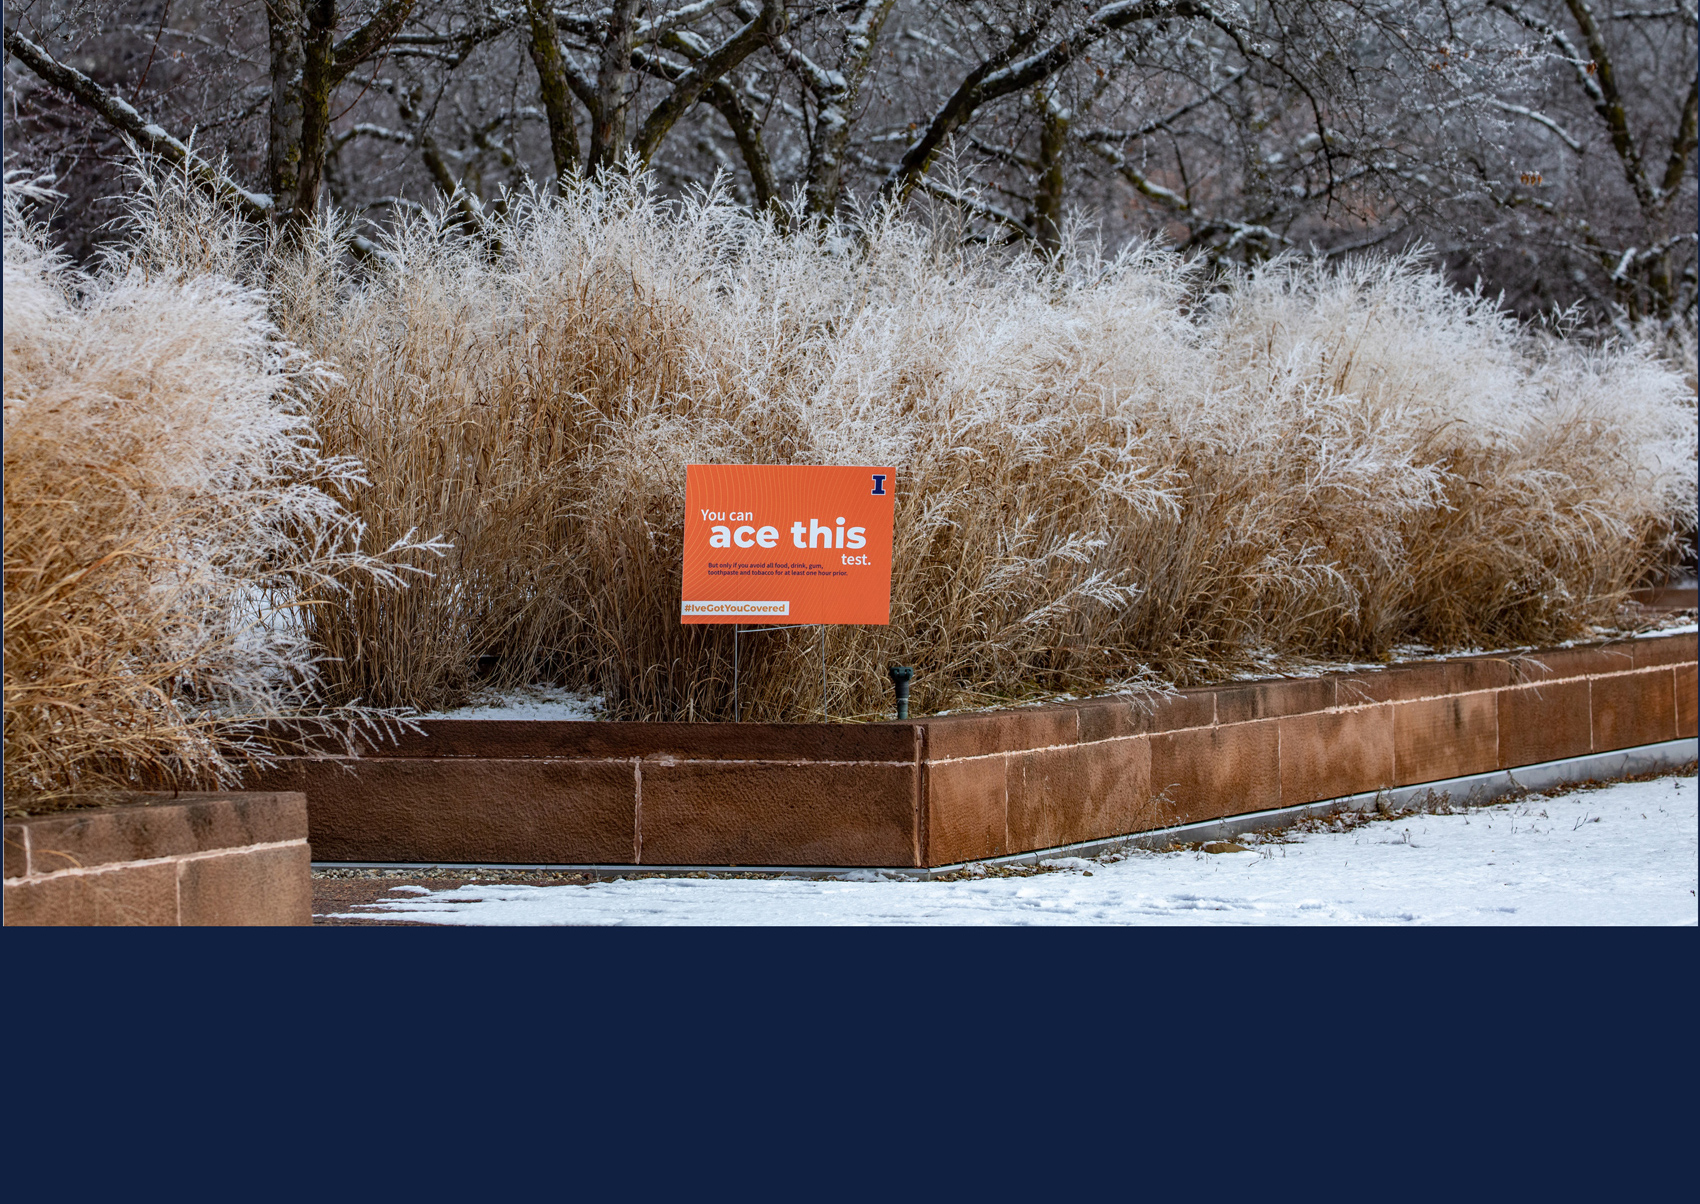 COVID testing sign in a snowy campus setting. Photo by Fred Zwicky